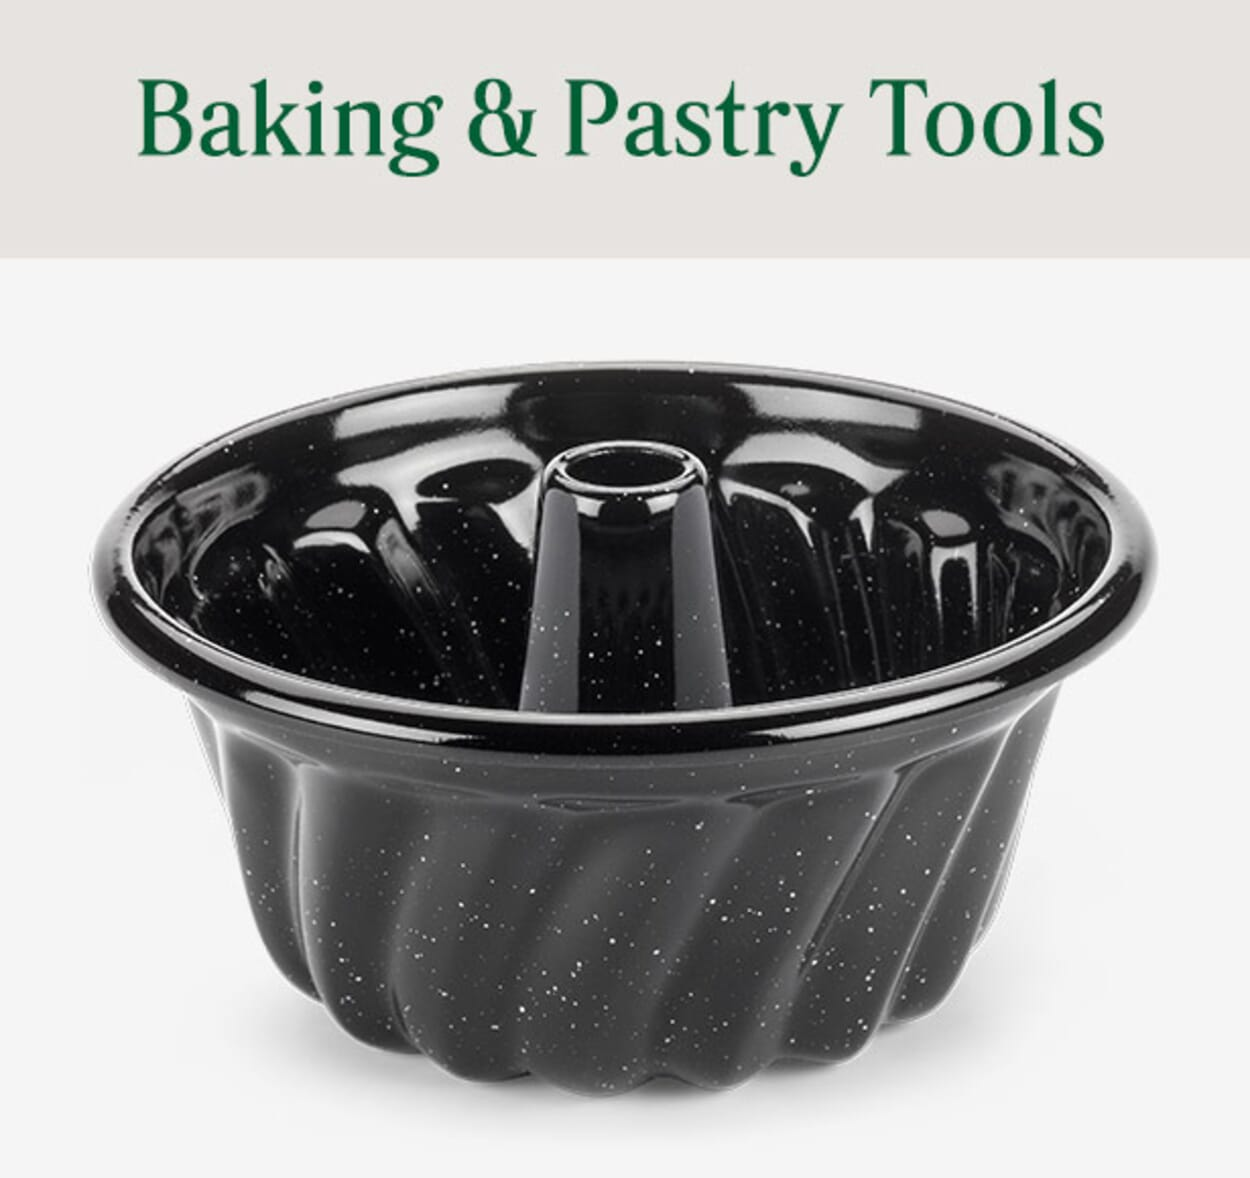 Baking & Pastry Tools